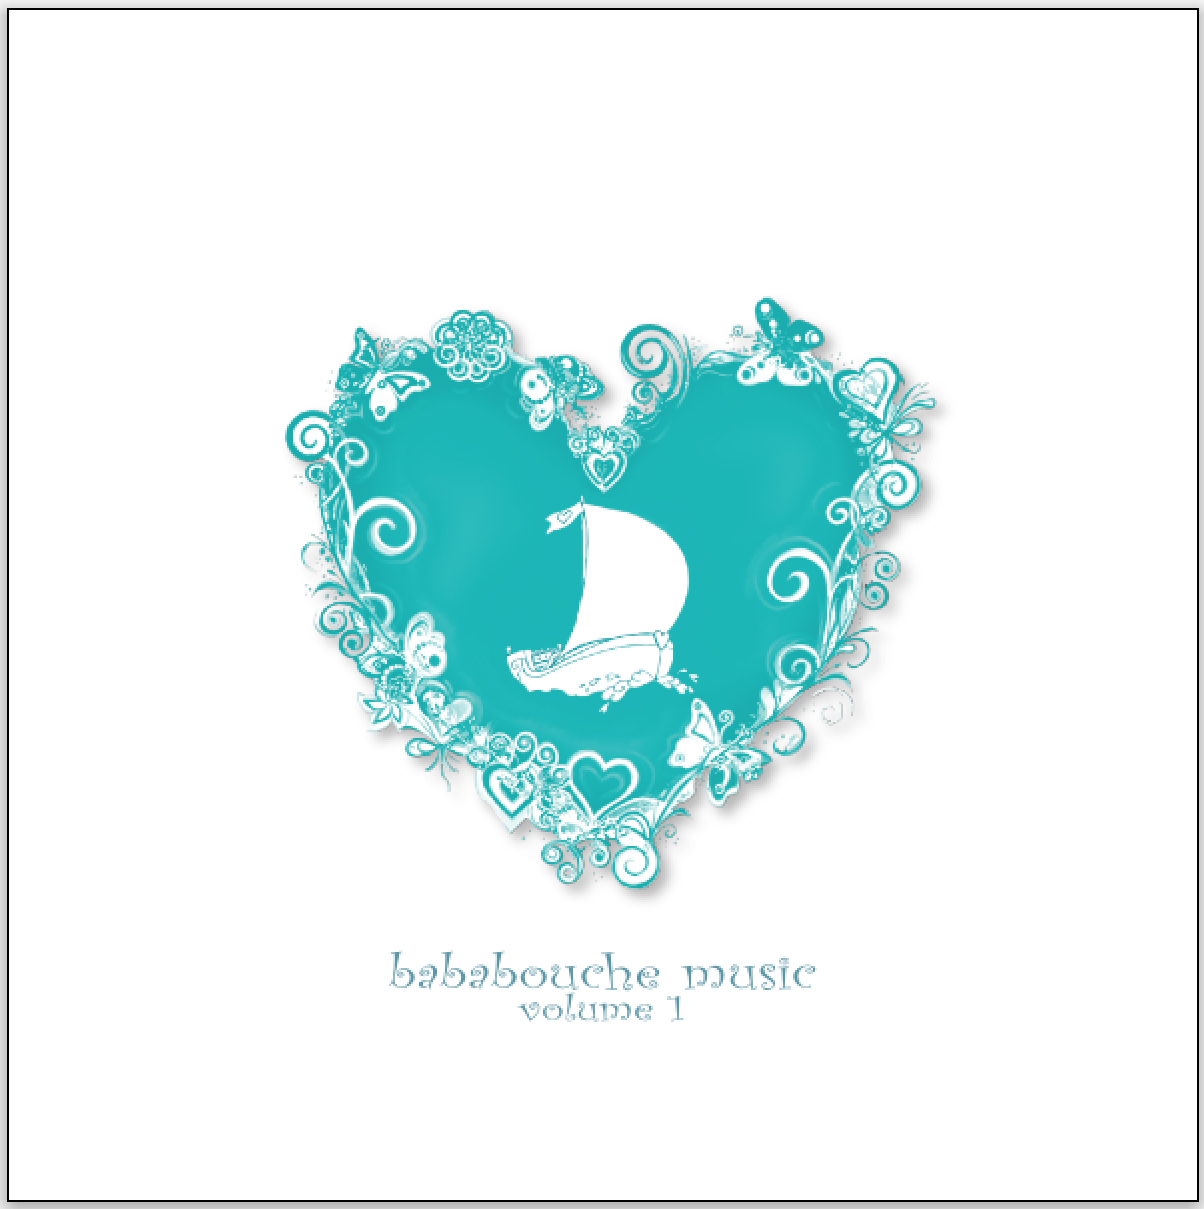 BABABOUCHE music volume 1